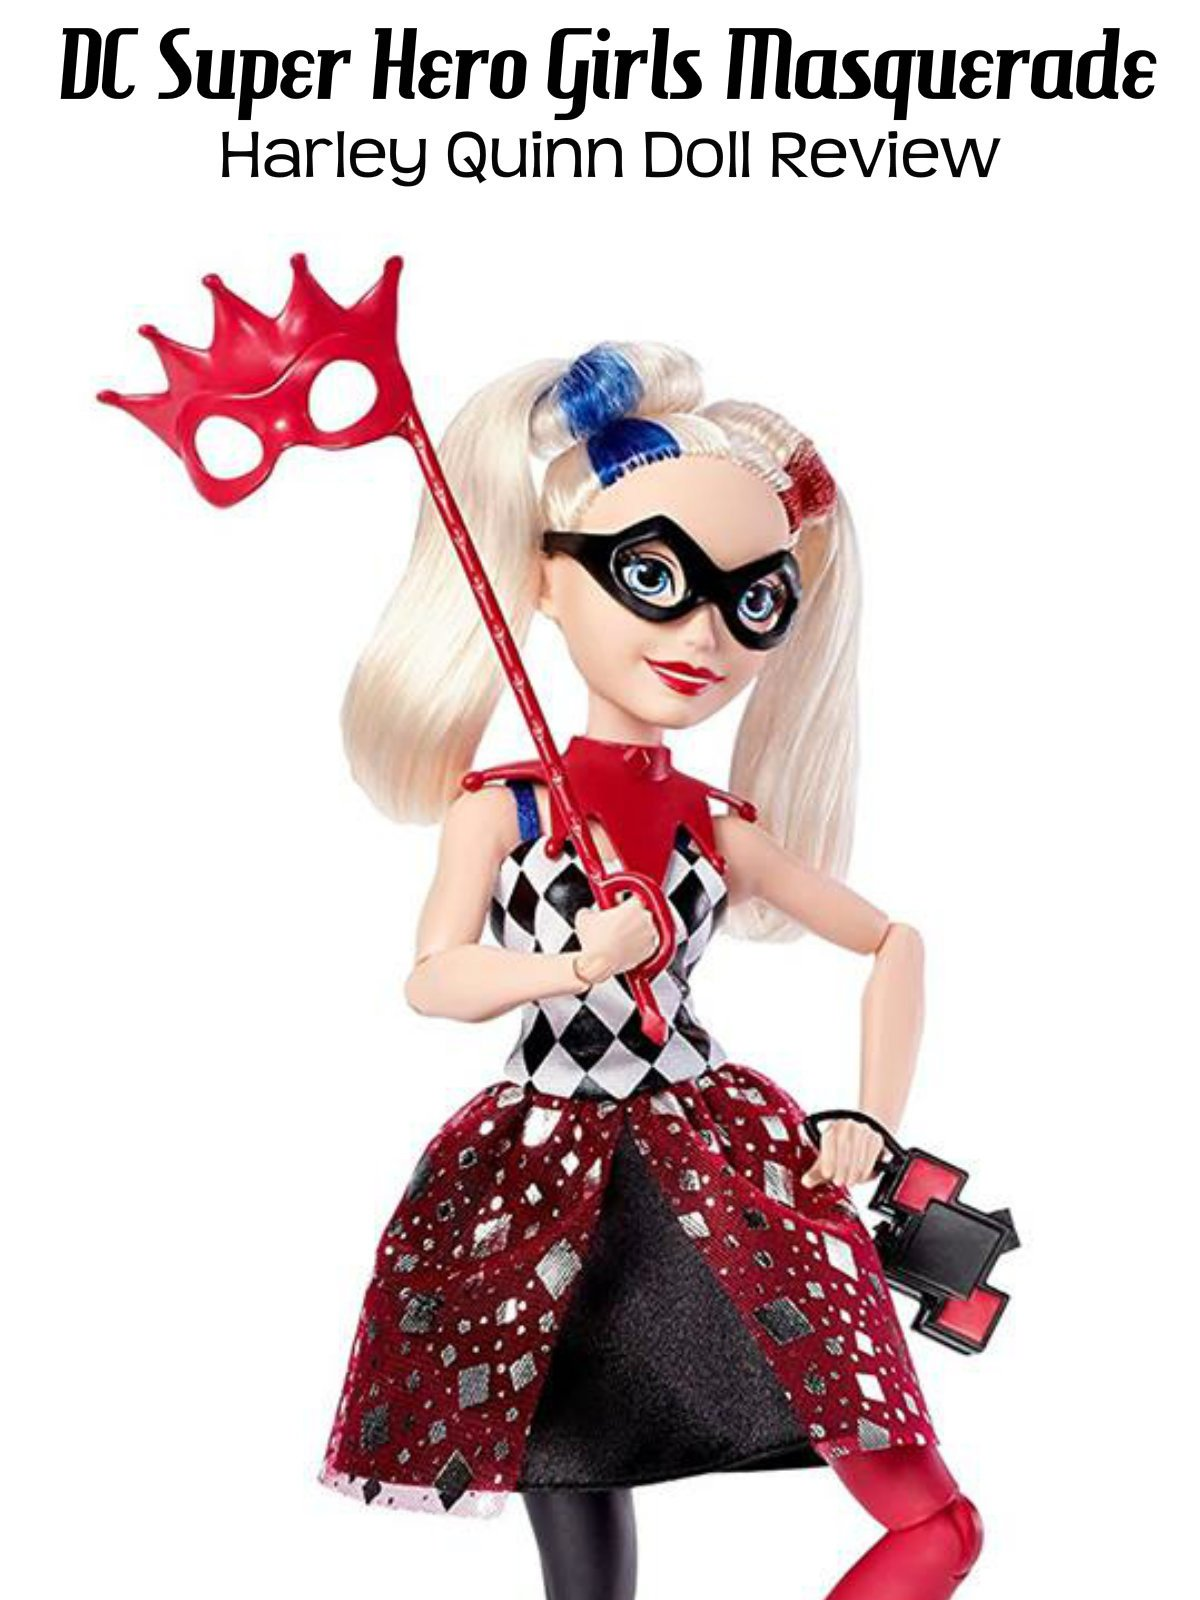 Review: DC Super Hero Girls Masquerade Harley Quinn Doll Review